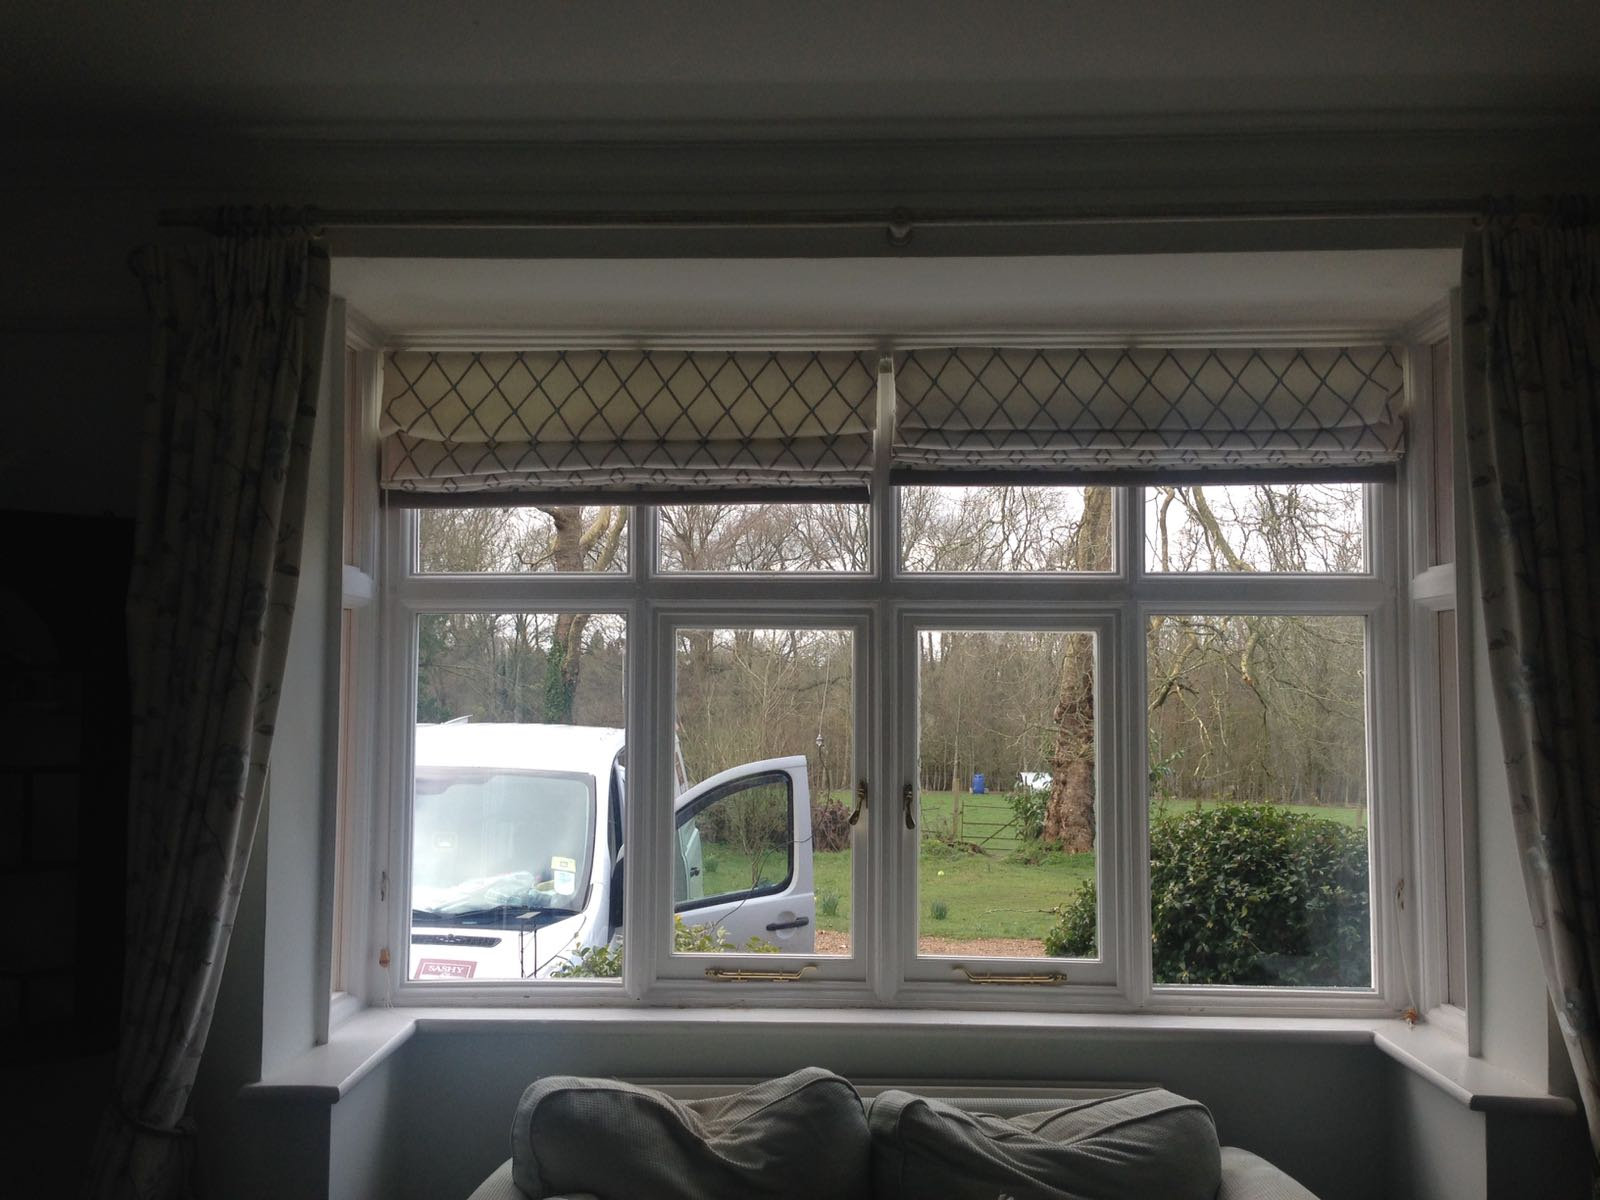 Window refurbishment at Hever